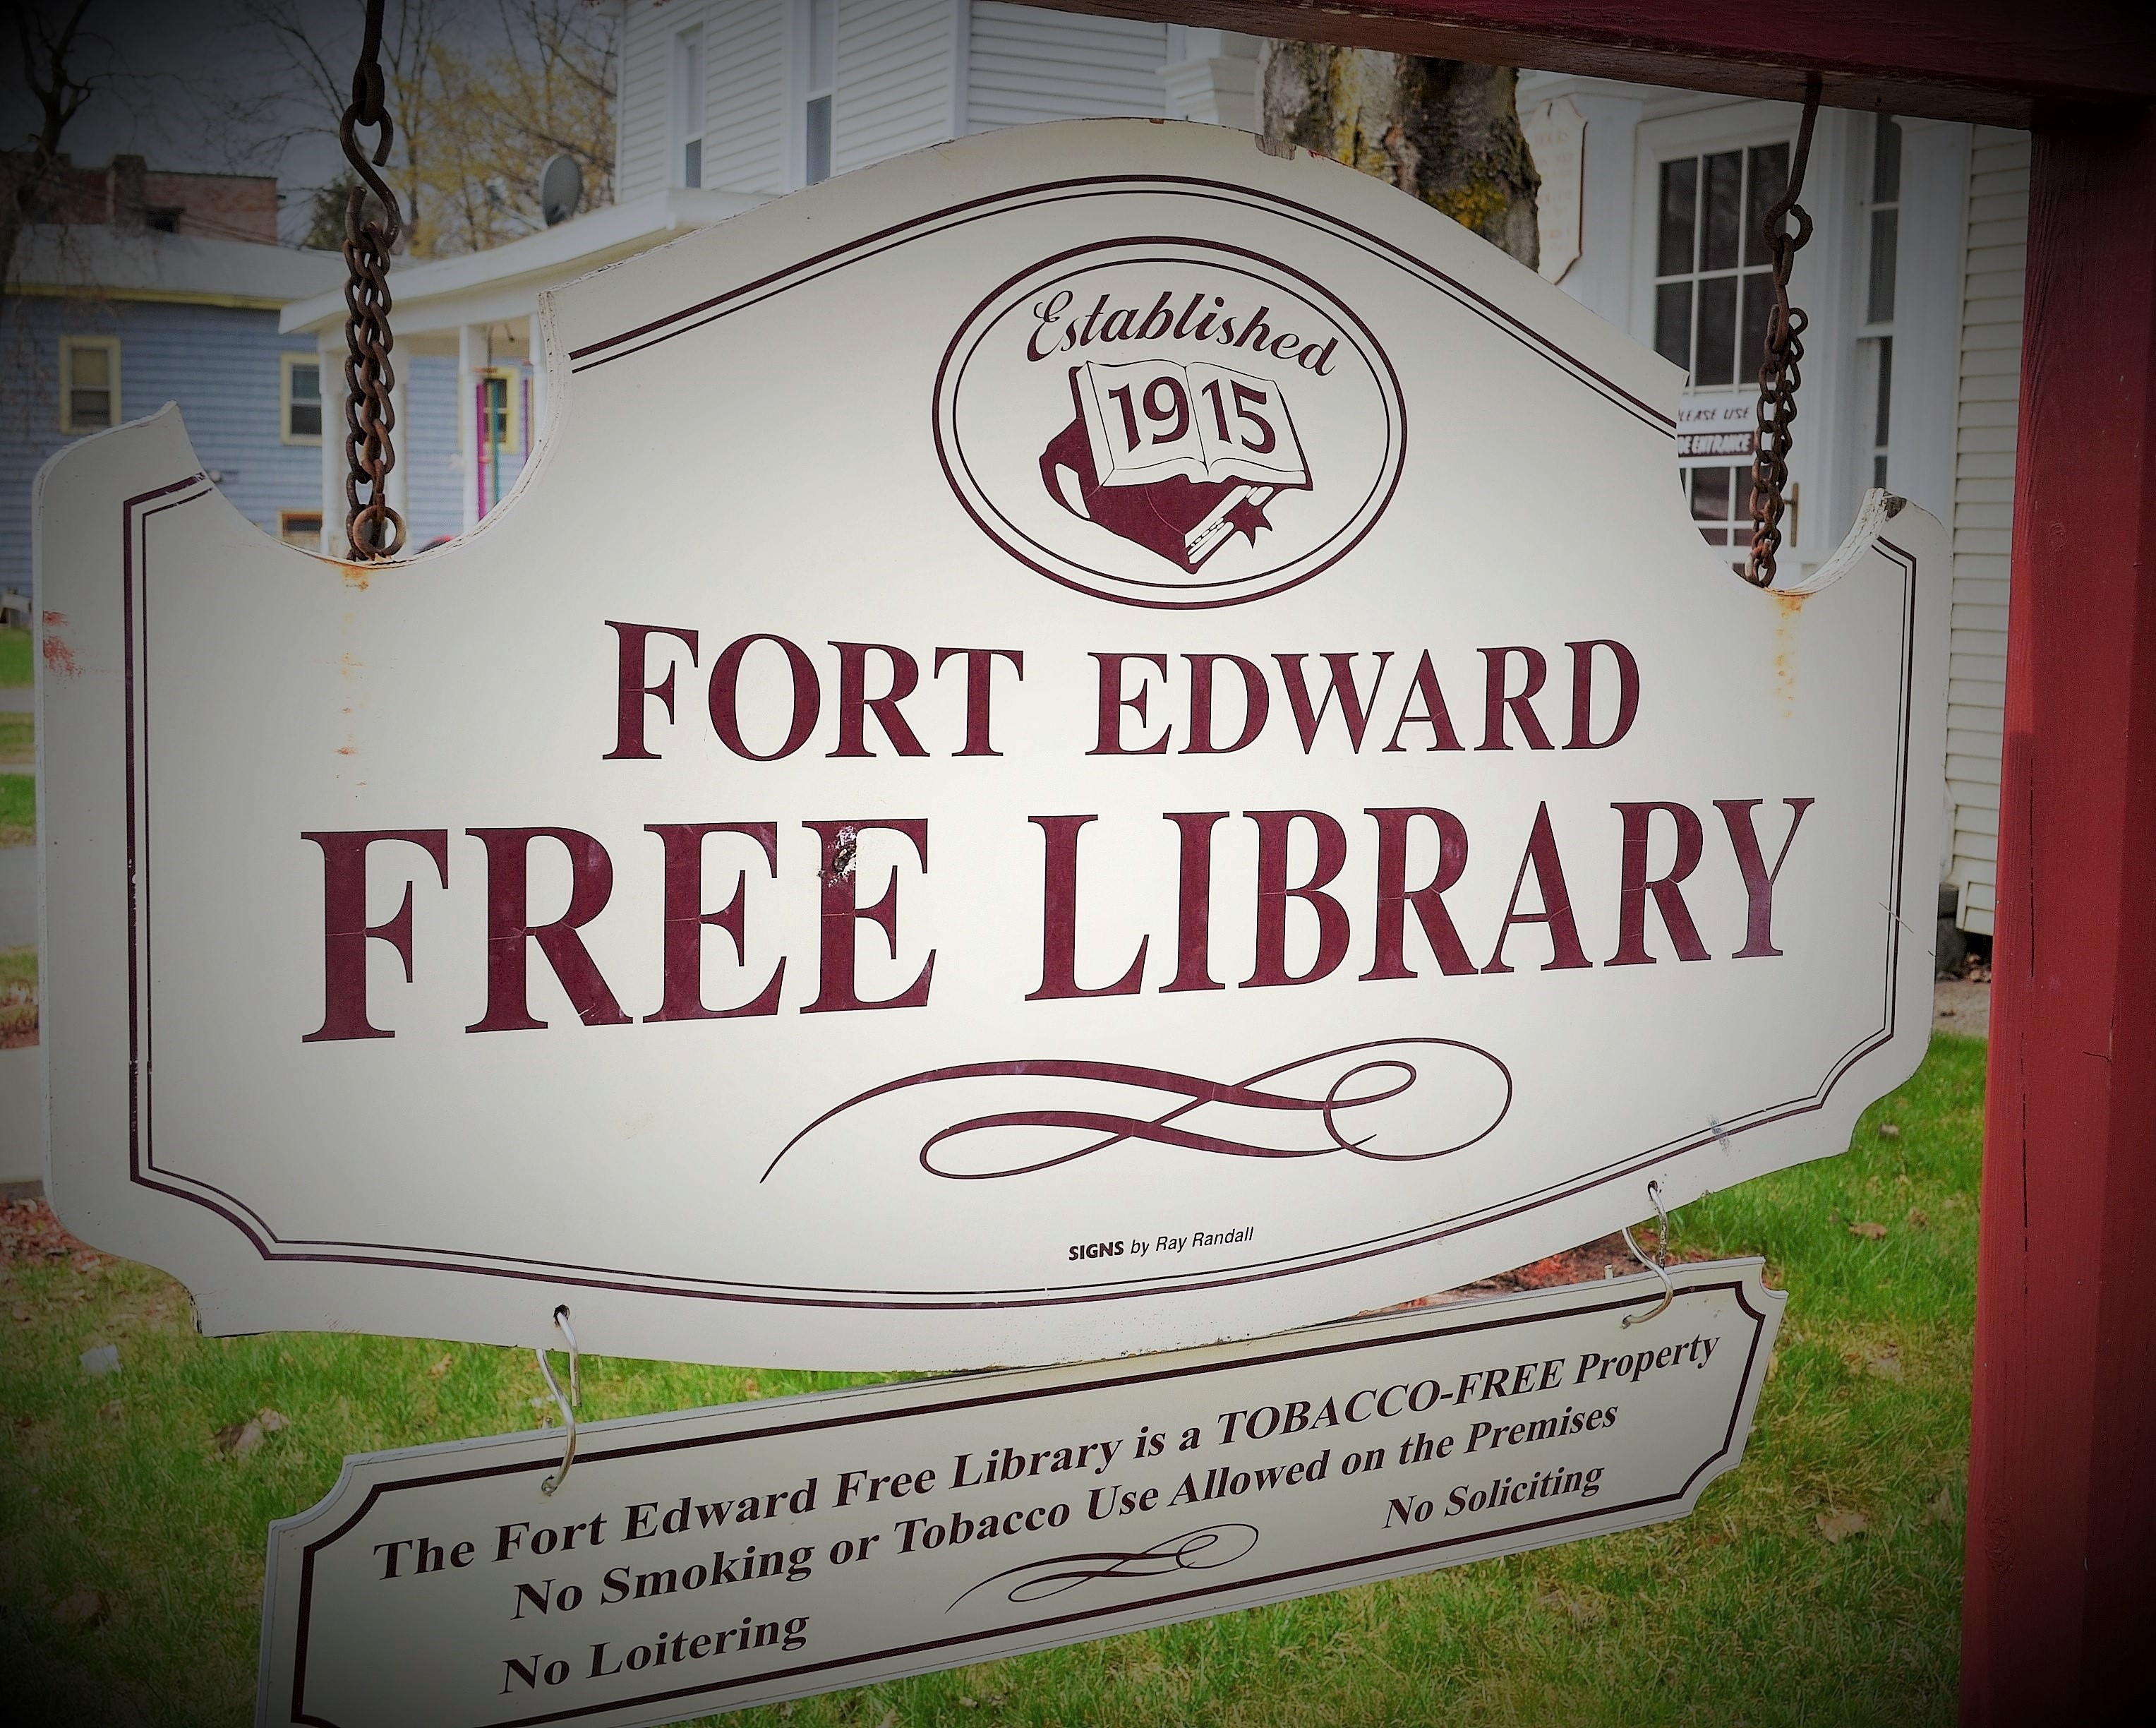 Thanksgiving Day and the Friday after the library is closed.